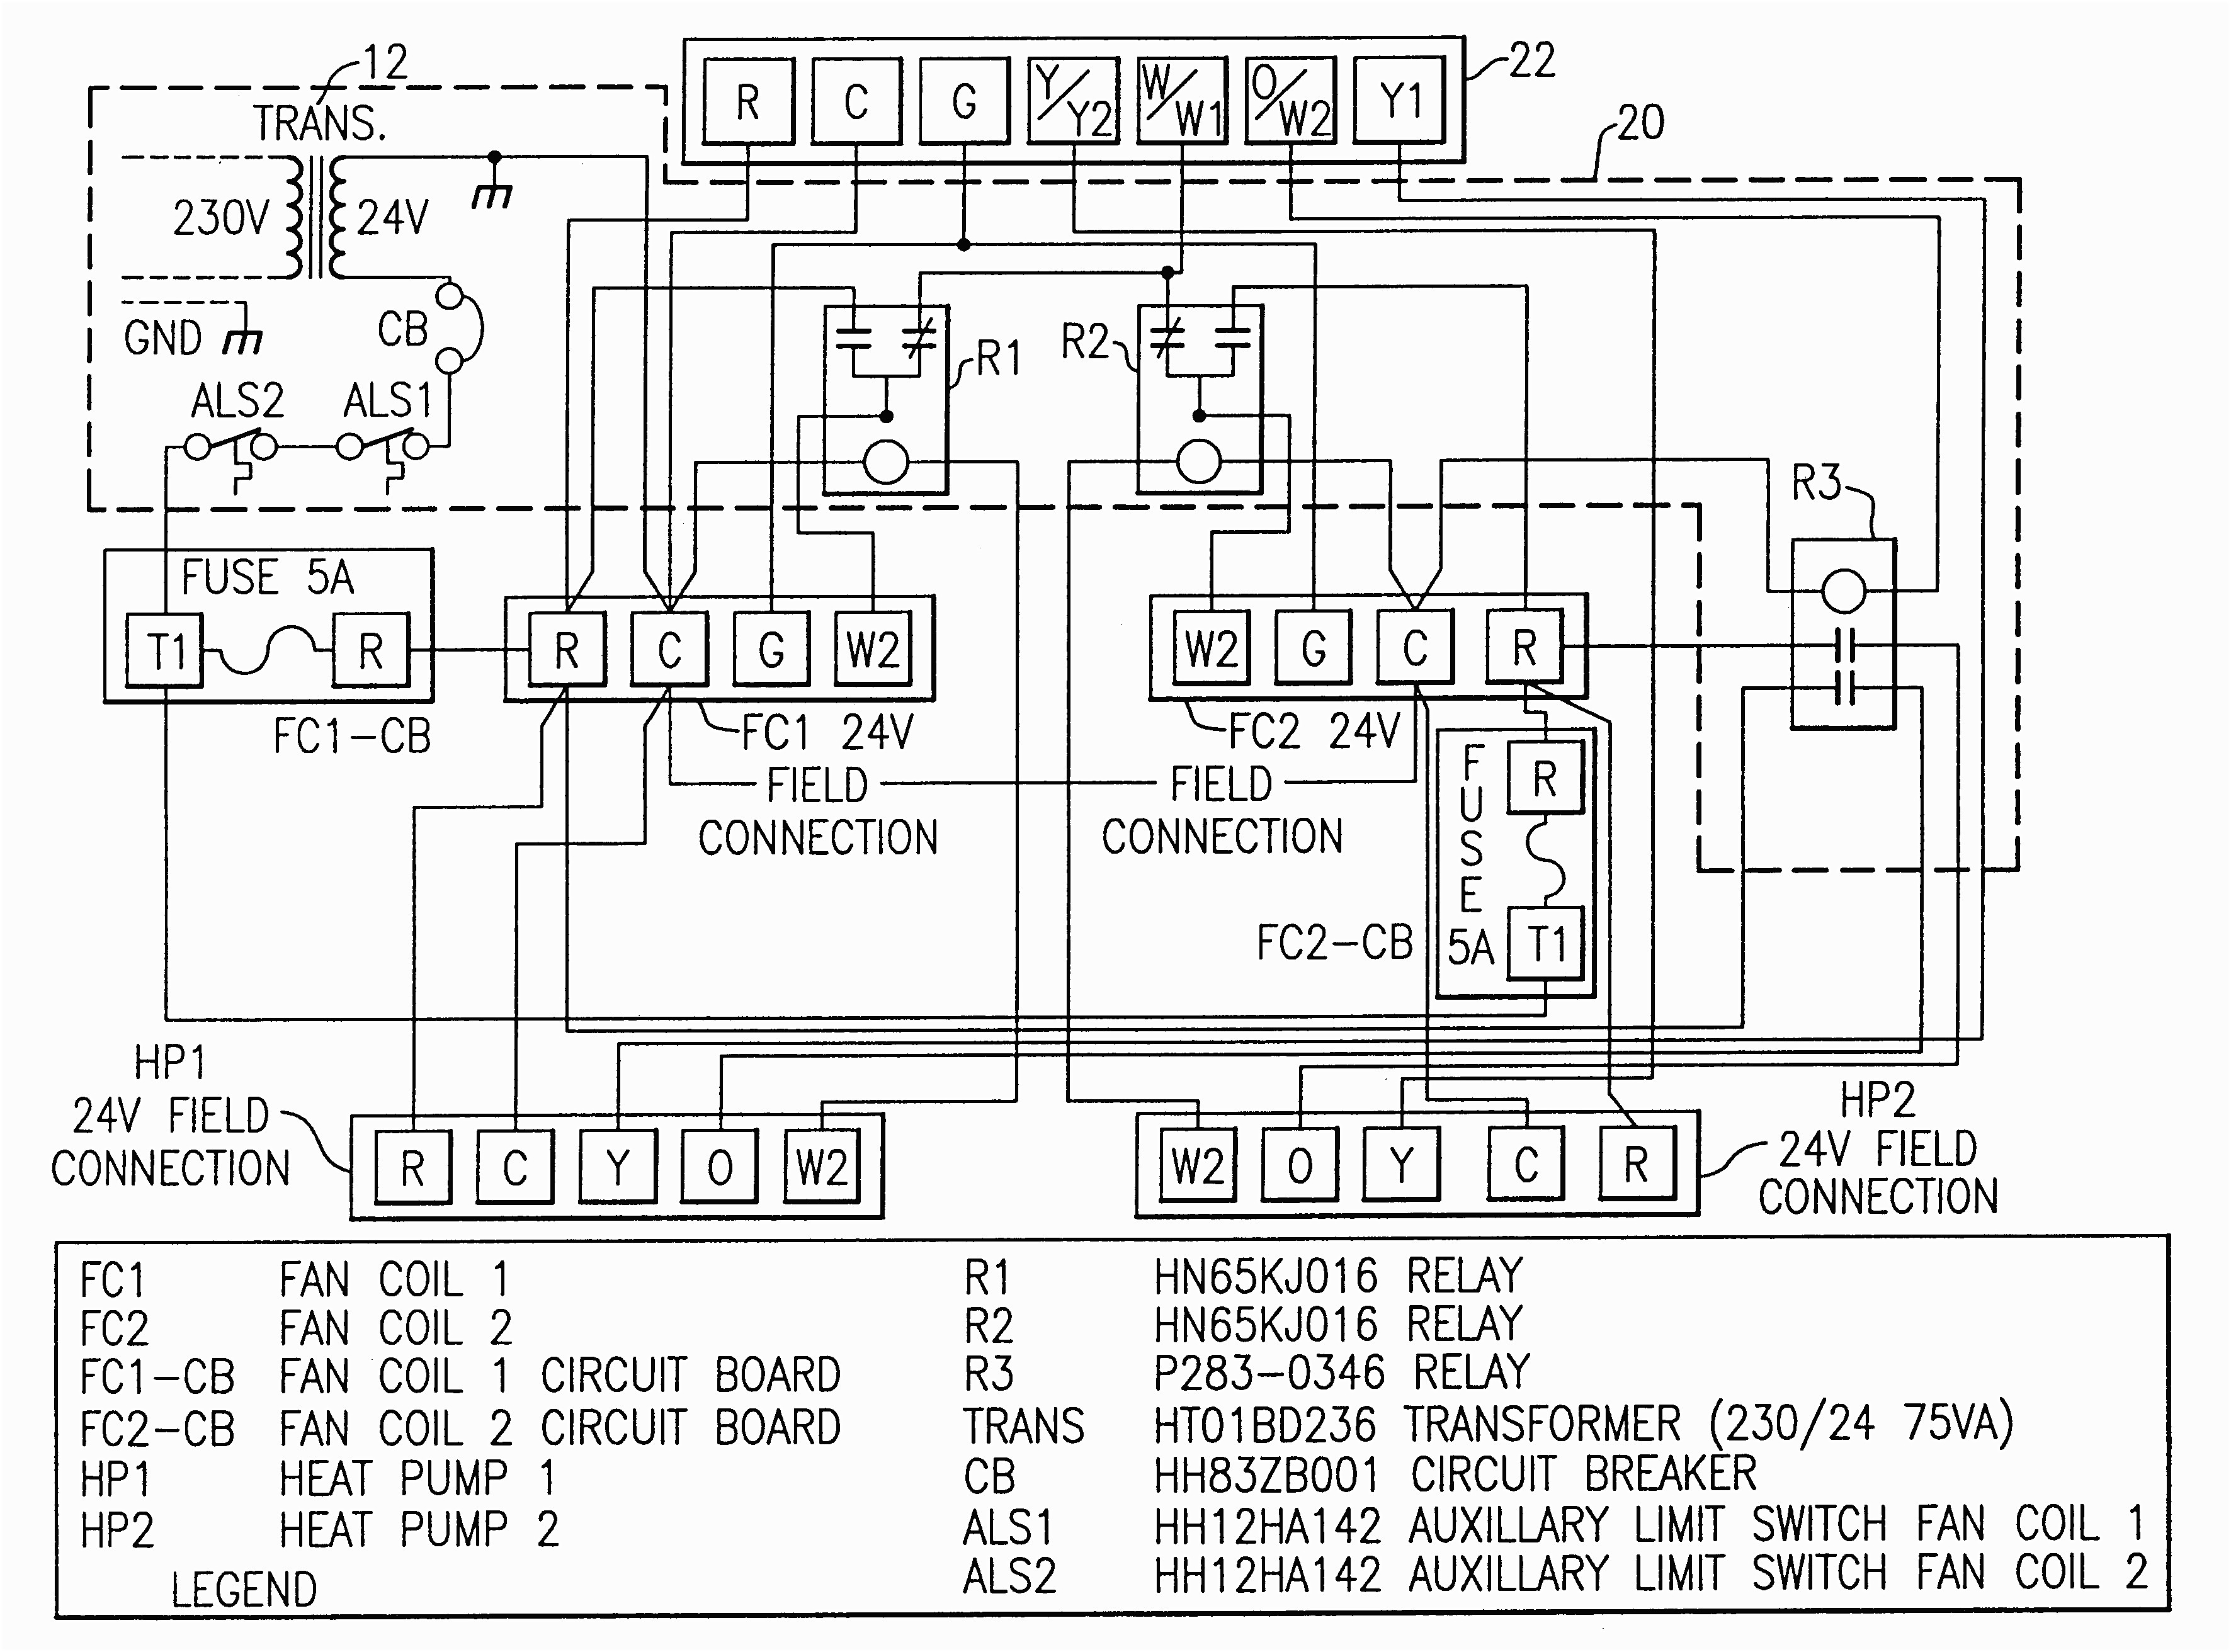 carrier air conditioner wiring diagram Collection-Wiring Diagrams For Hvac Fresh Wiring A Ac Thermostat Diagram New Carrier Wiring Diagram 48dp016 2-n